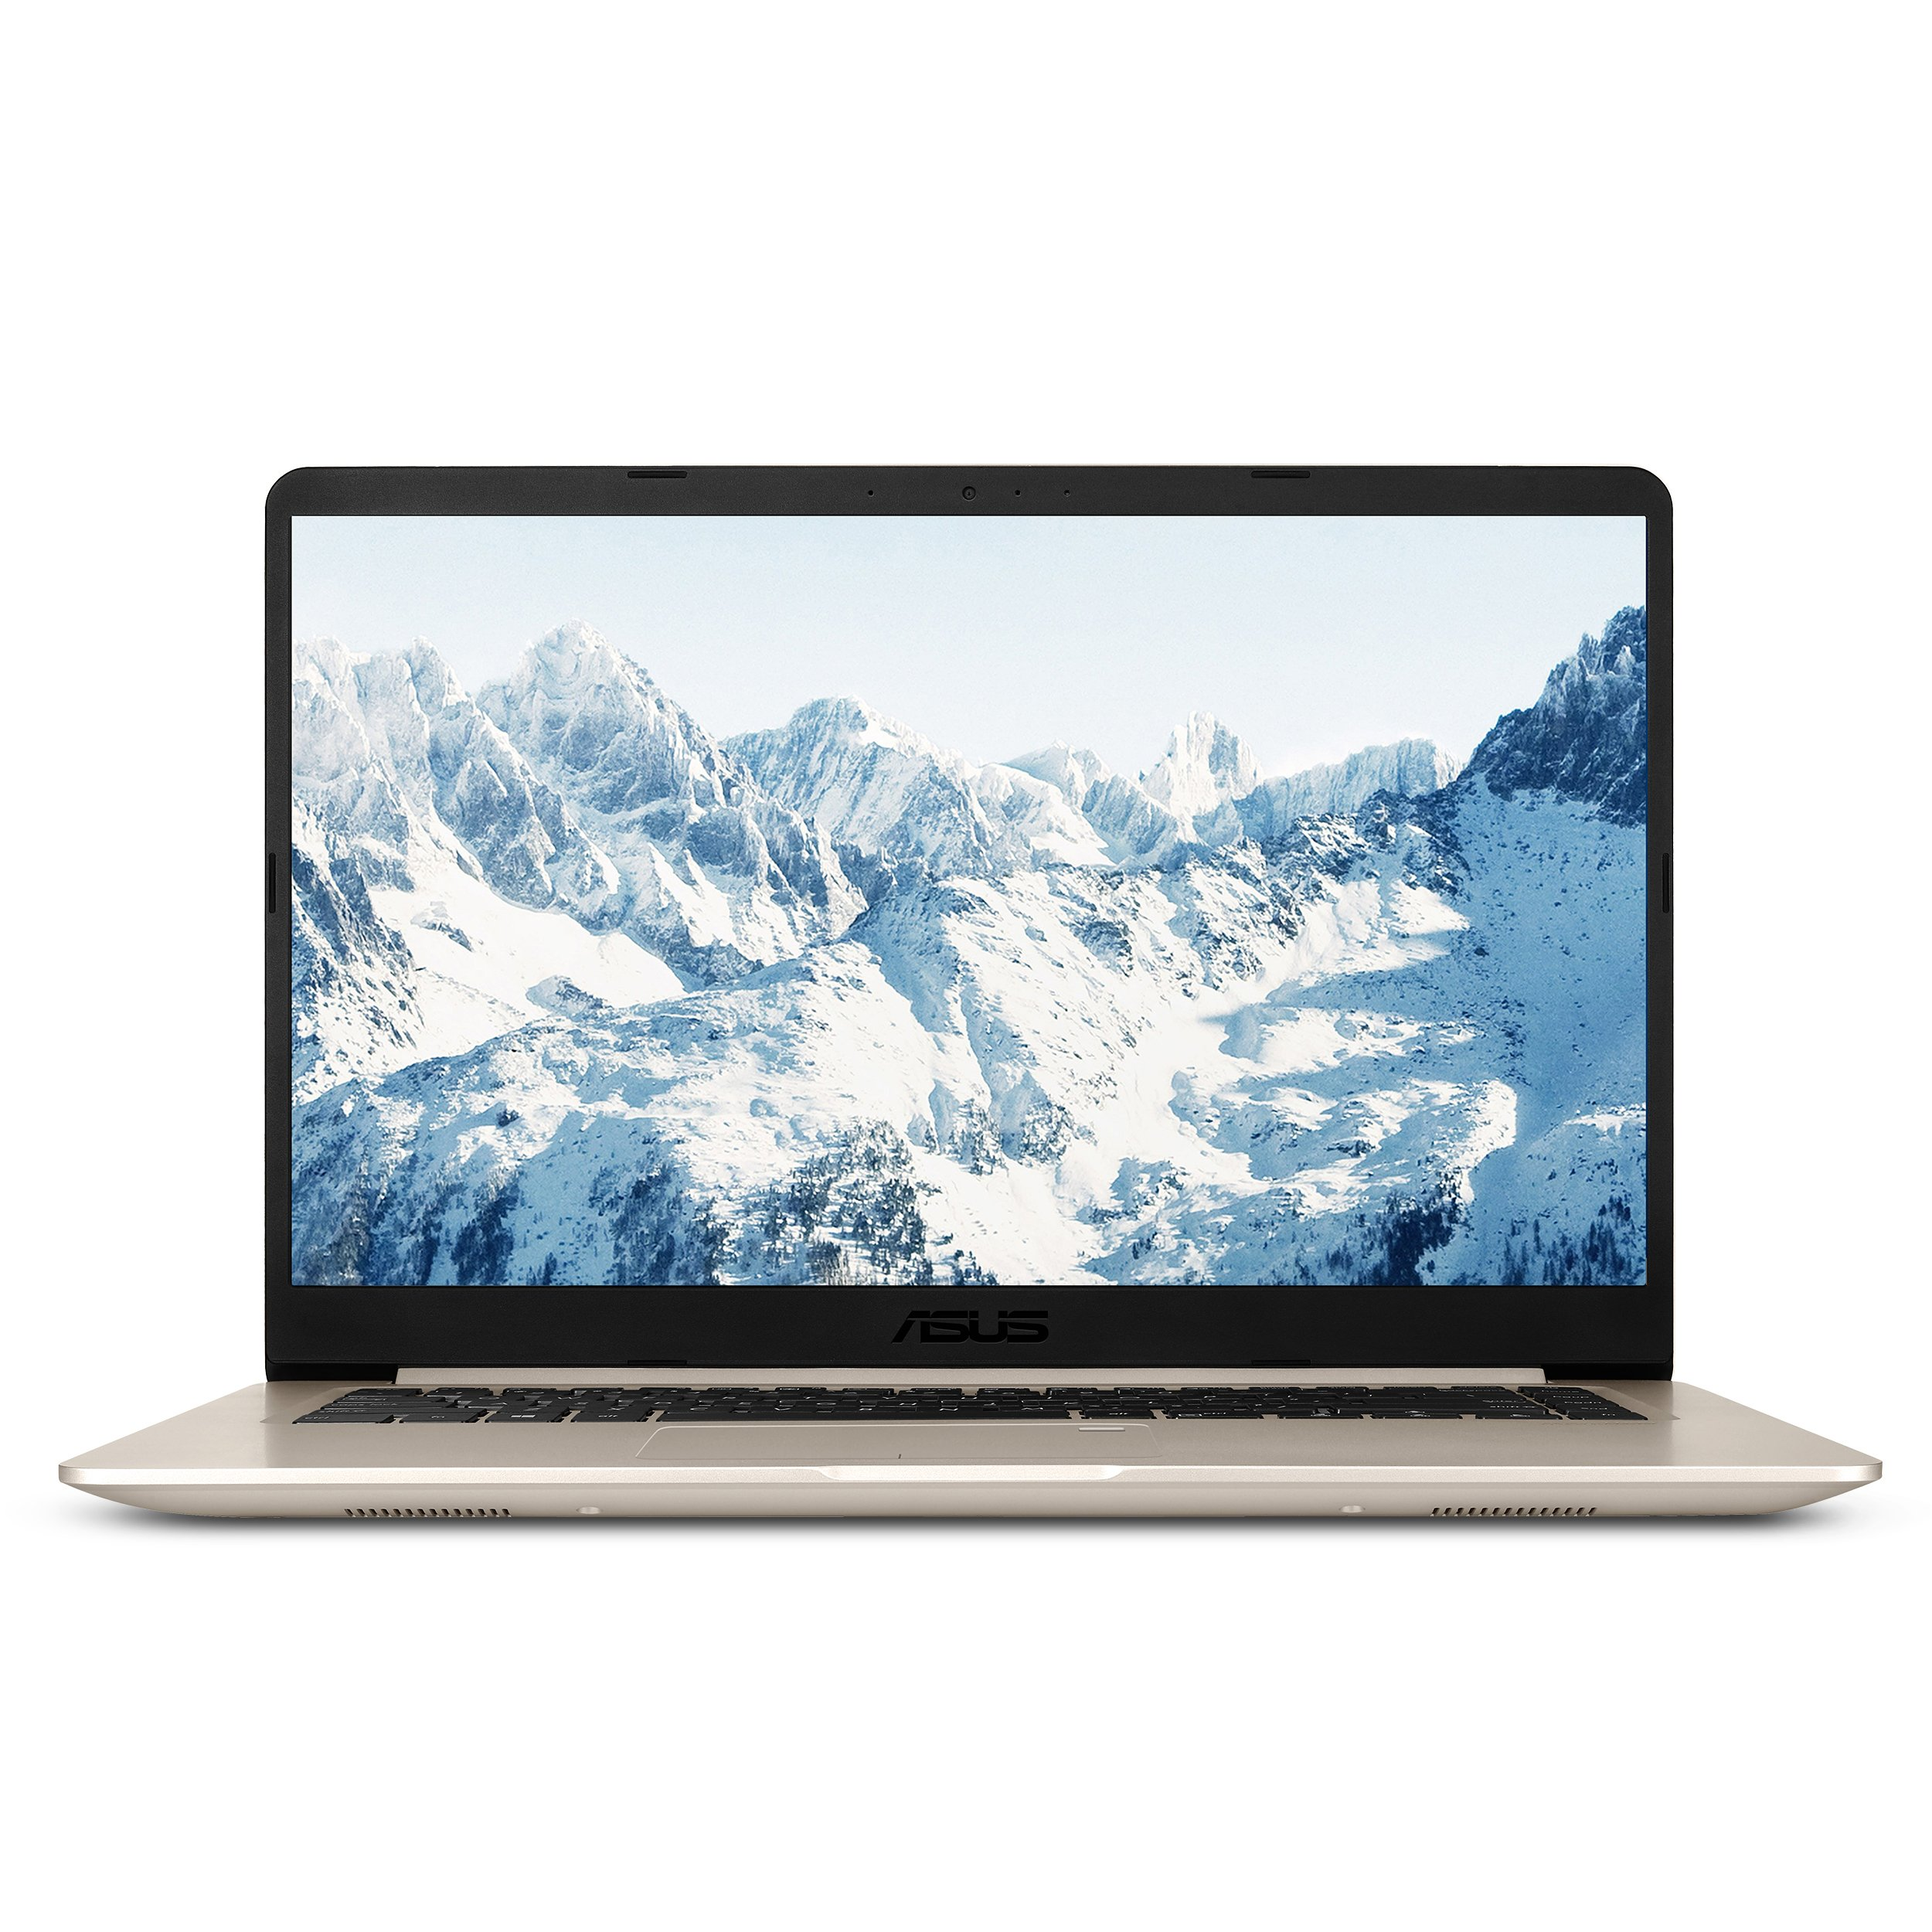 """ASUS VivoBook S Ultra Thin and Portable Laptop, Intel Core i7-8550U Processor, 8GB DDR4 RAM, 128GB SSD+1TB HDD, 15.6"""" FHD WideView Display, ASUS NanoEdge Bezel, S510UA-DS71"""